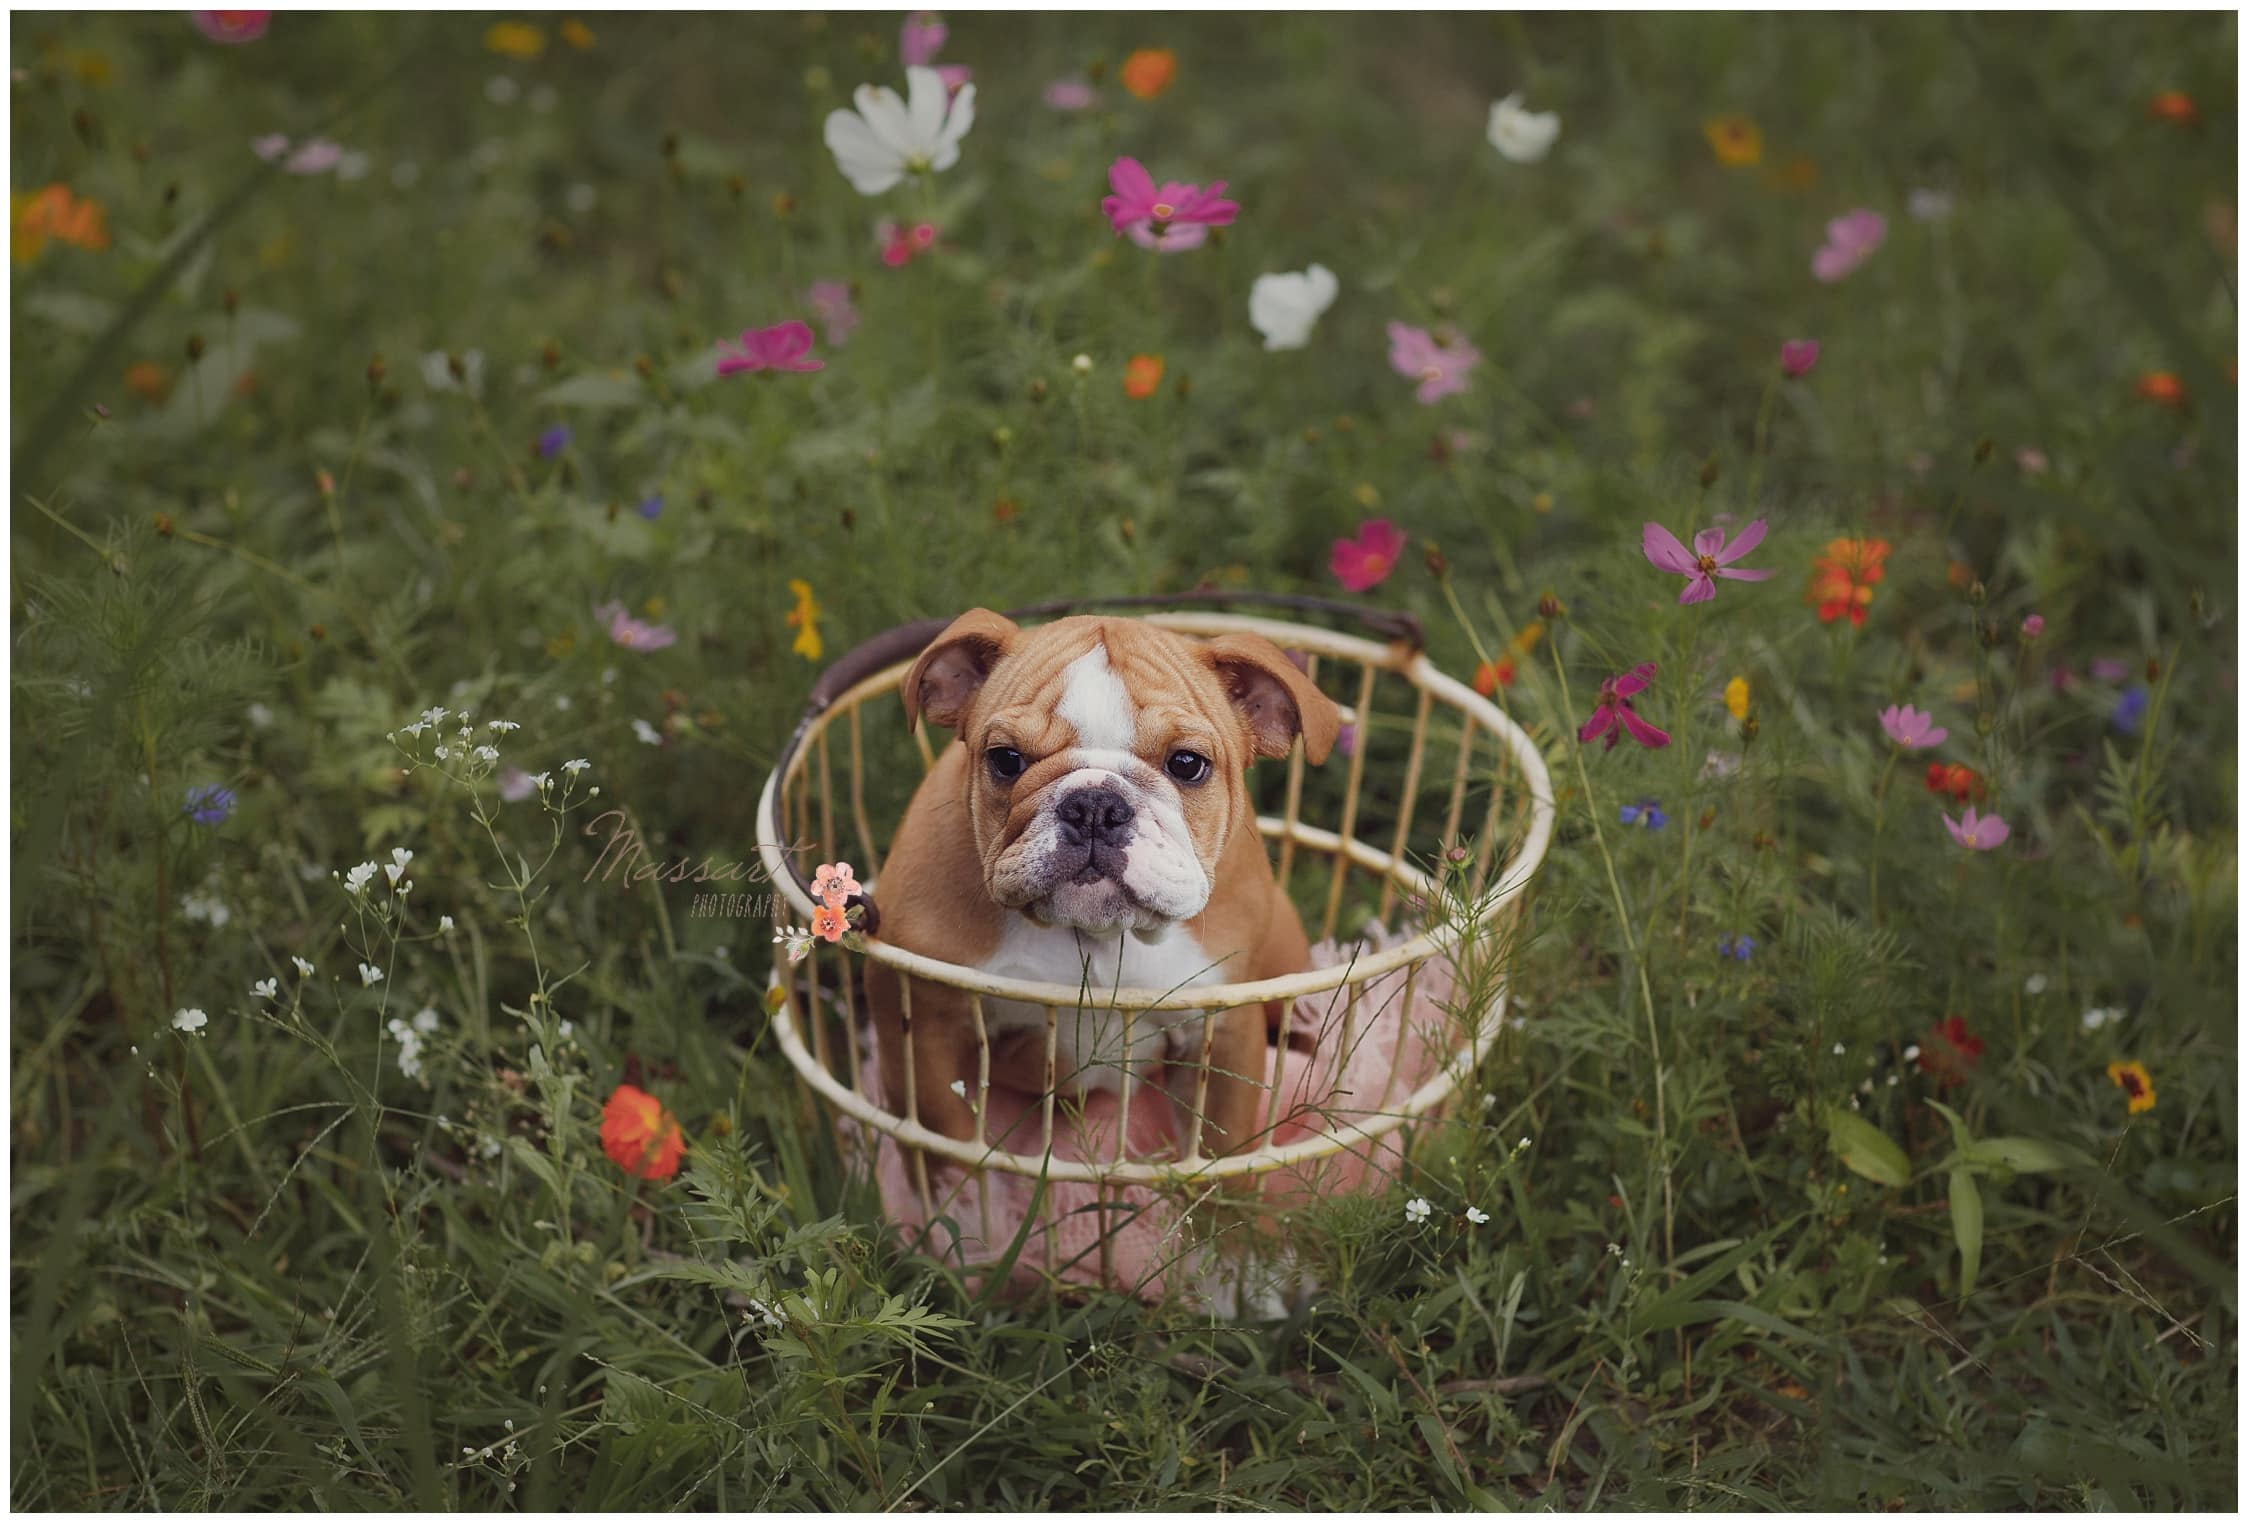 New puppy sits in basket surrounded by flowers during outdoor family portrait session photographed by Massart Photography Rhode Island